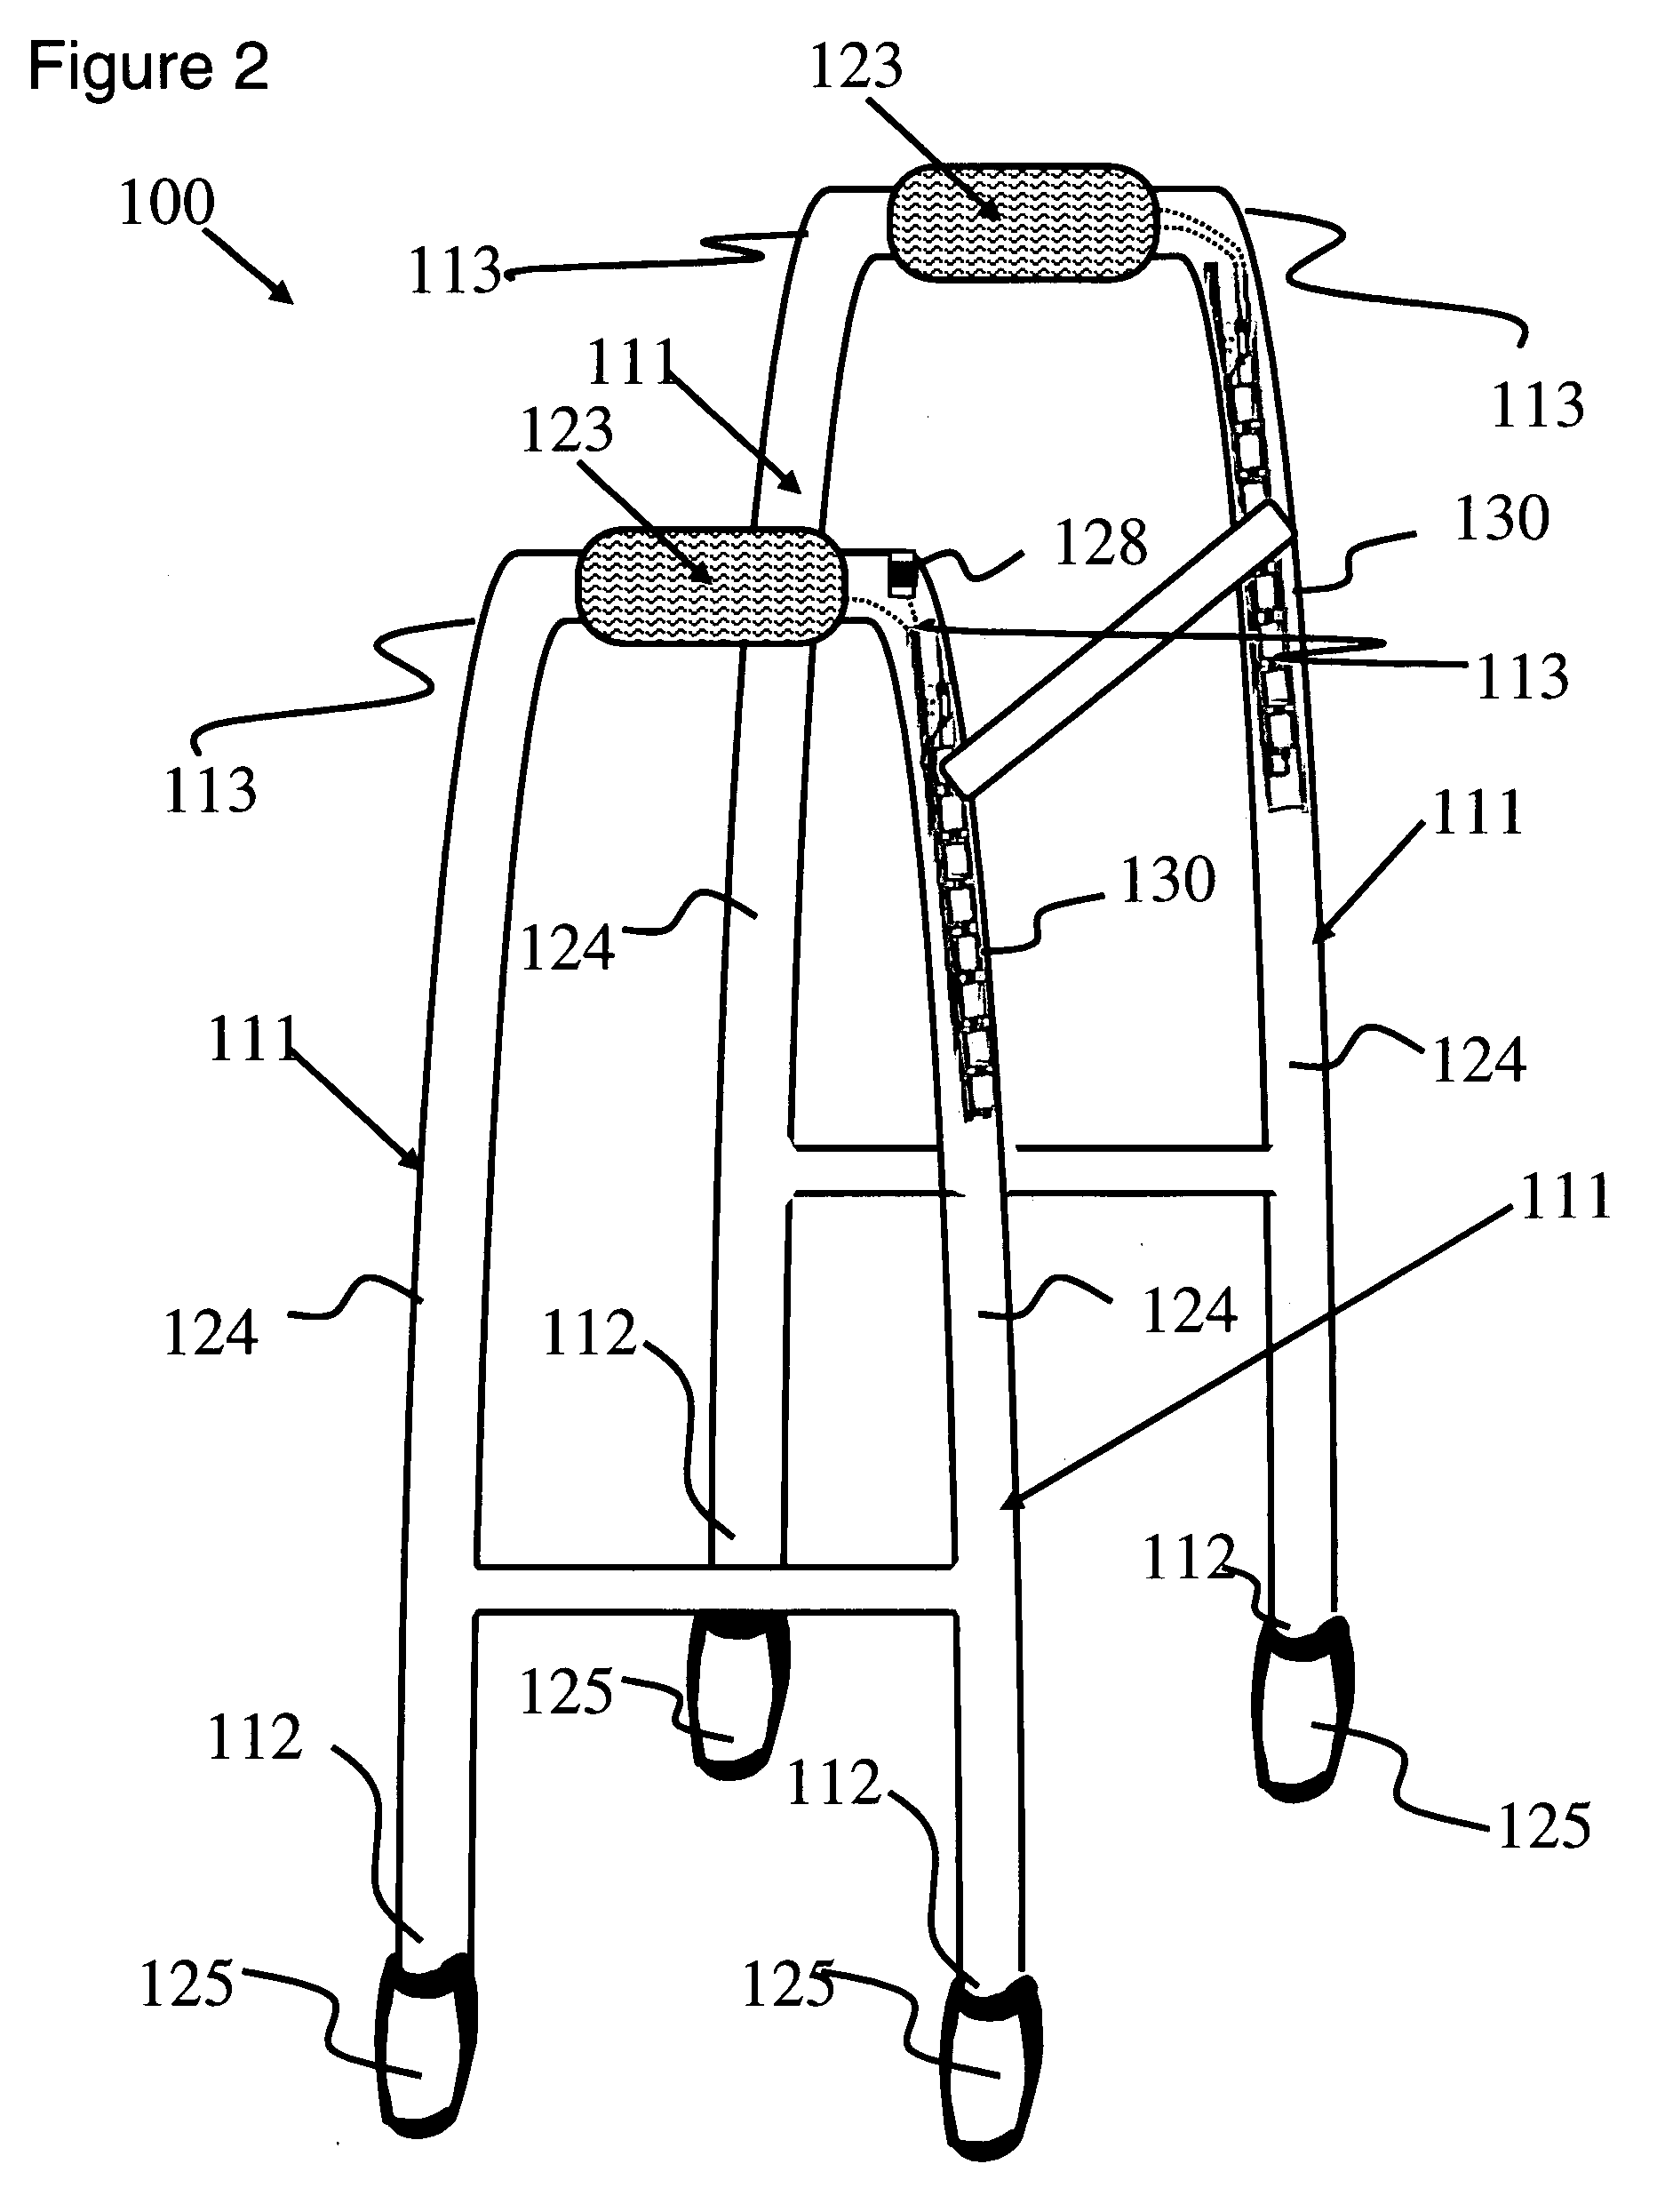 US20080272102A1 20081106 D00002 patent us20080272102 heated handle construction google patents,Heated Grips Wiring Diagram